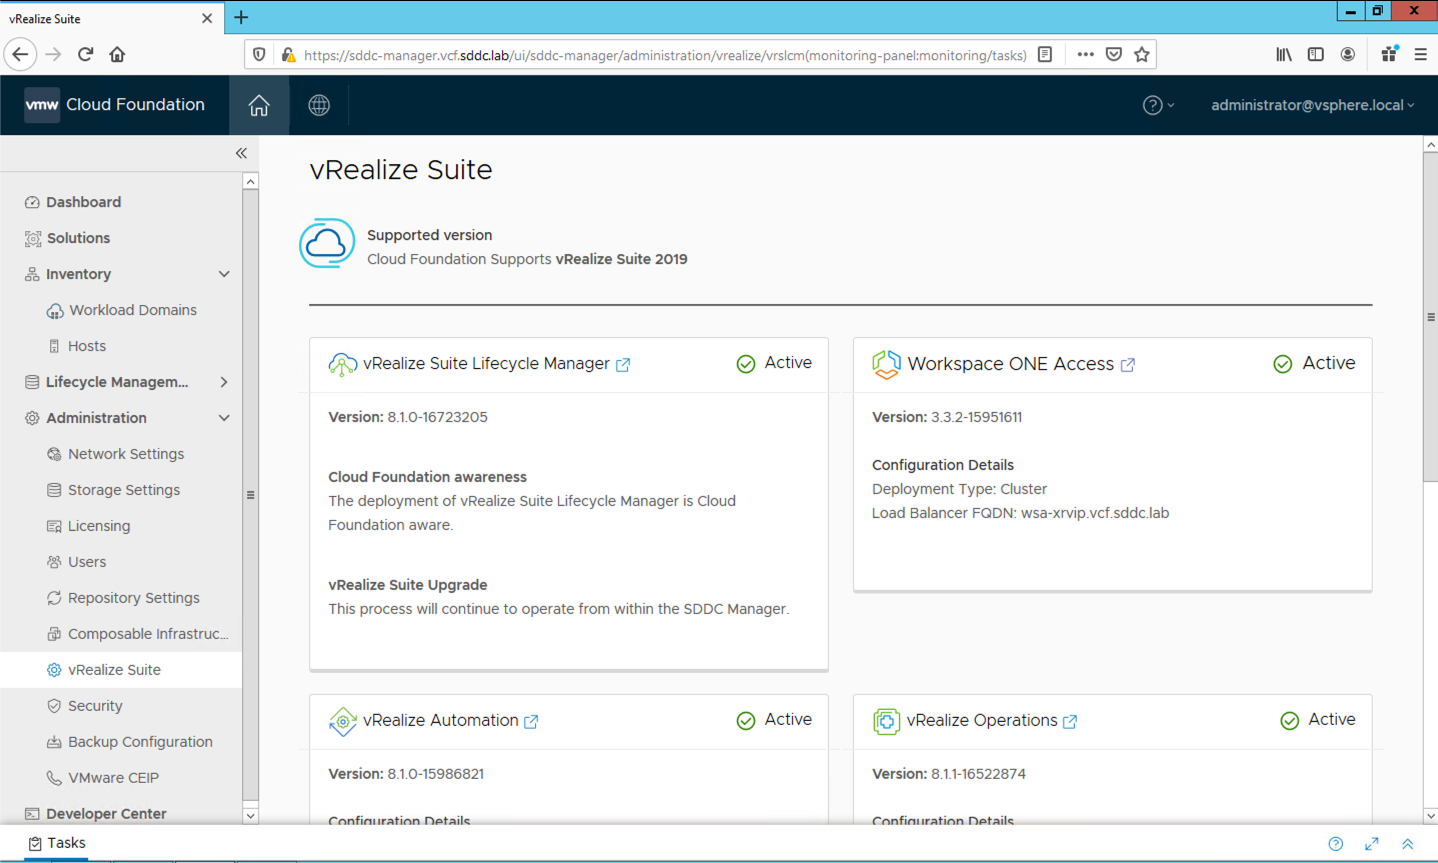 SDDC Manager deploys vRealize Suite Lifecycle Manager and has awareness of vRealize products installed. Screenshot courtesy of Heath Johnson.